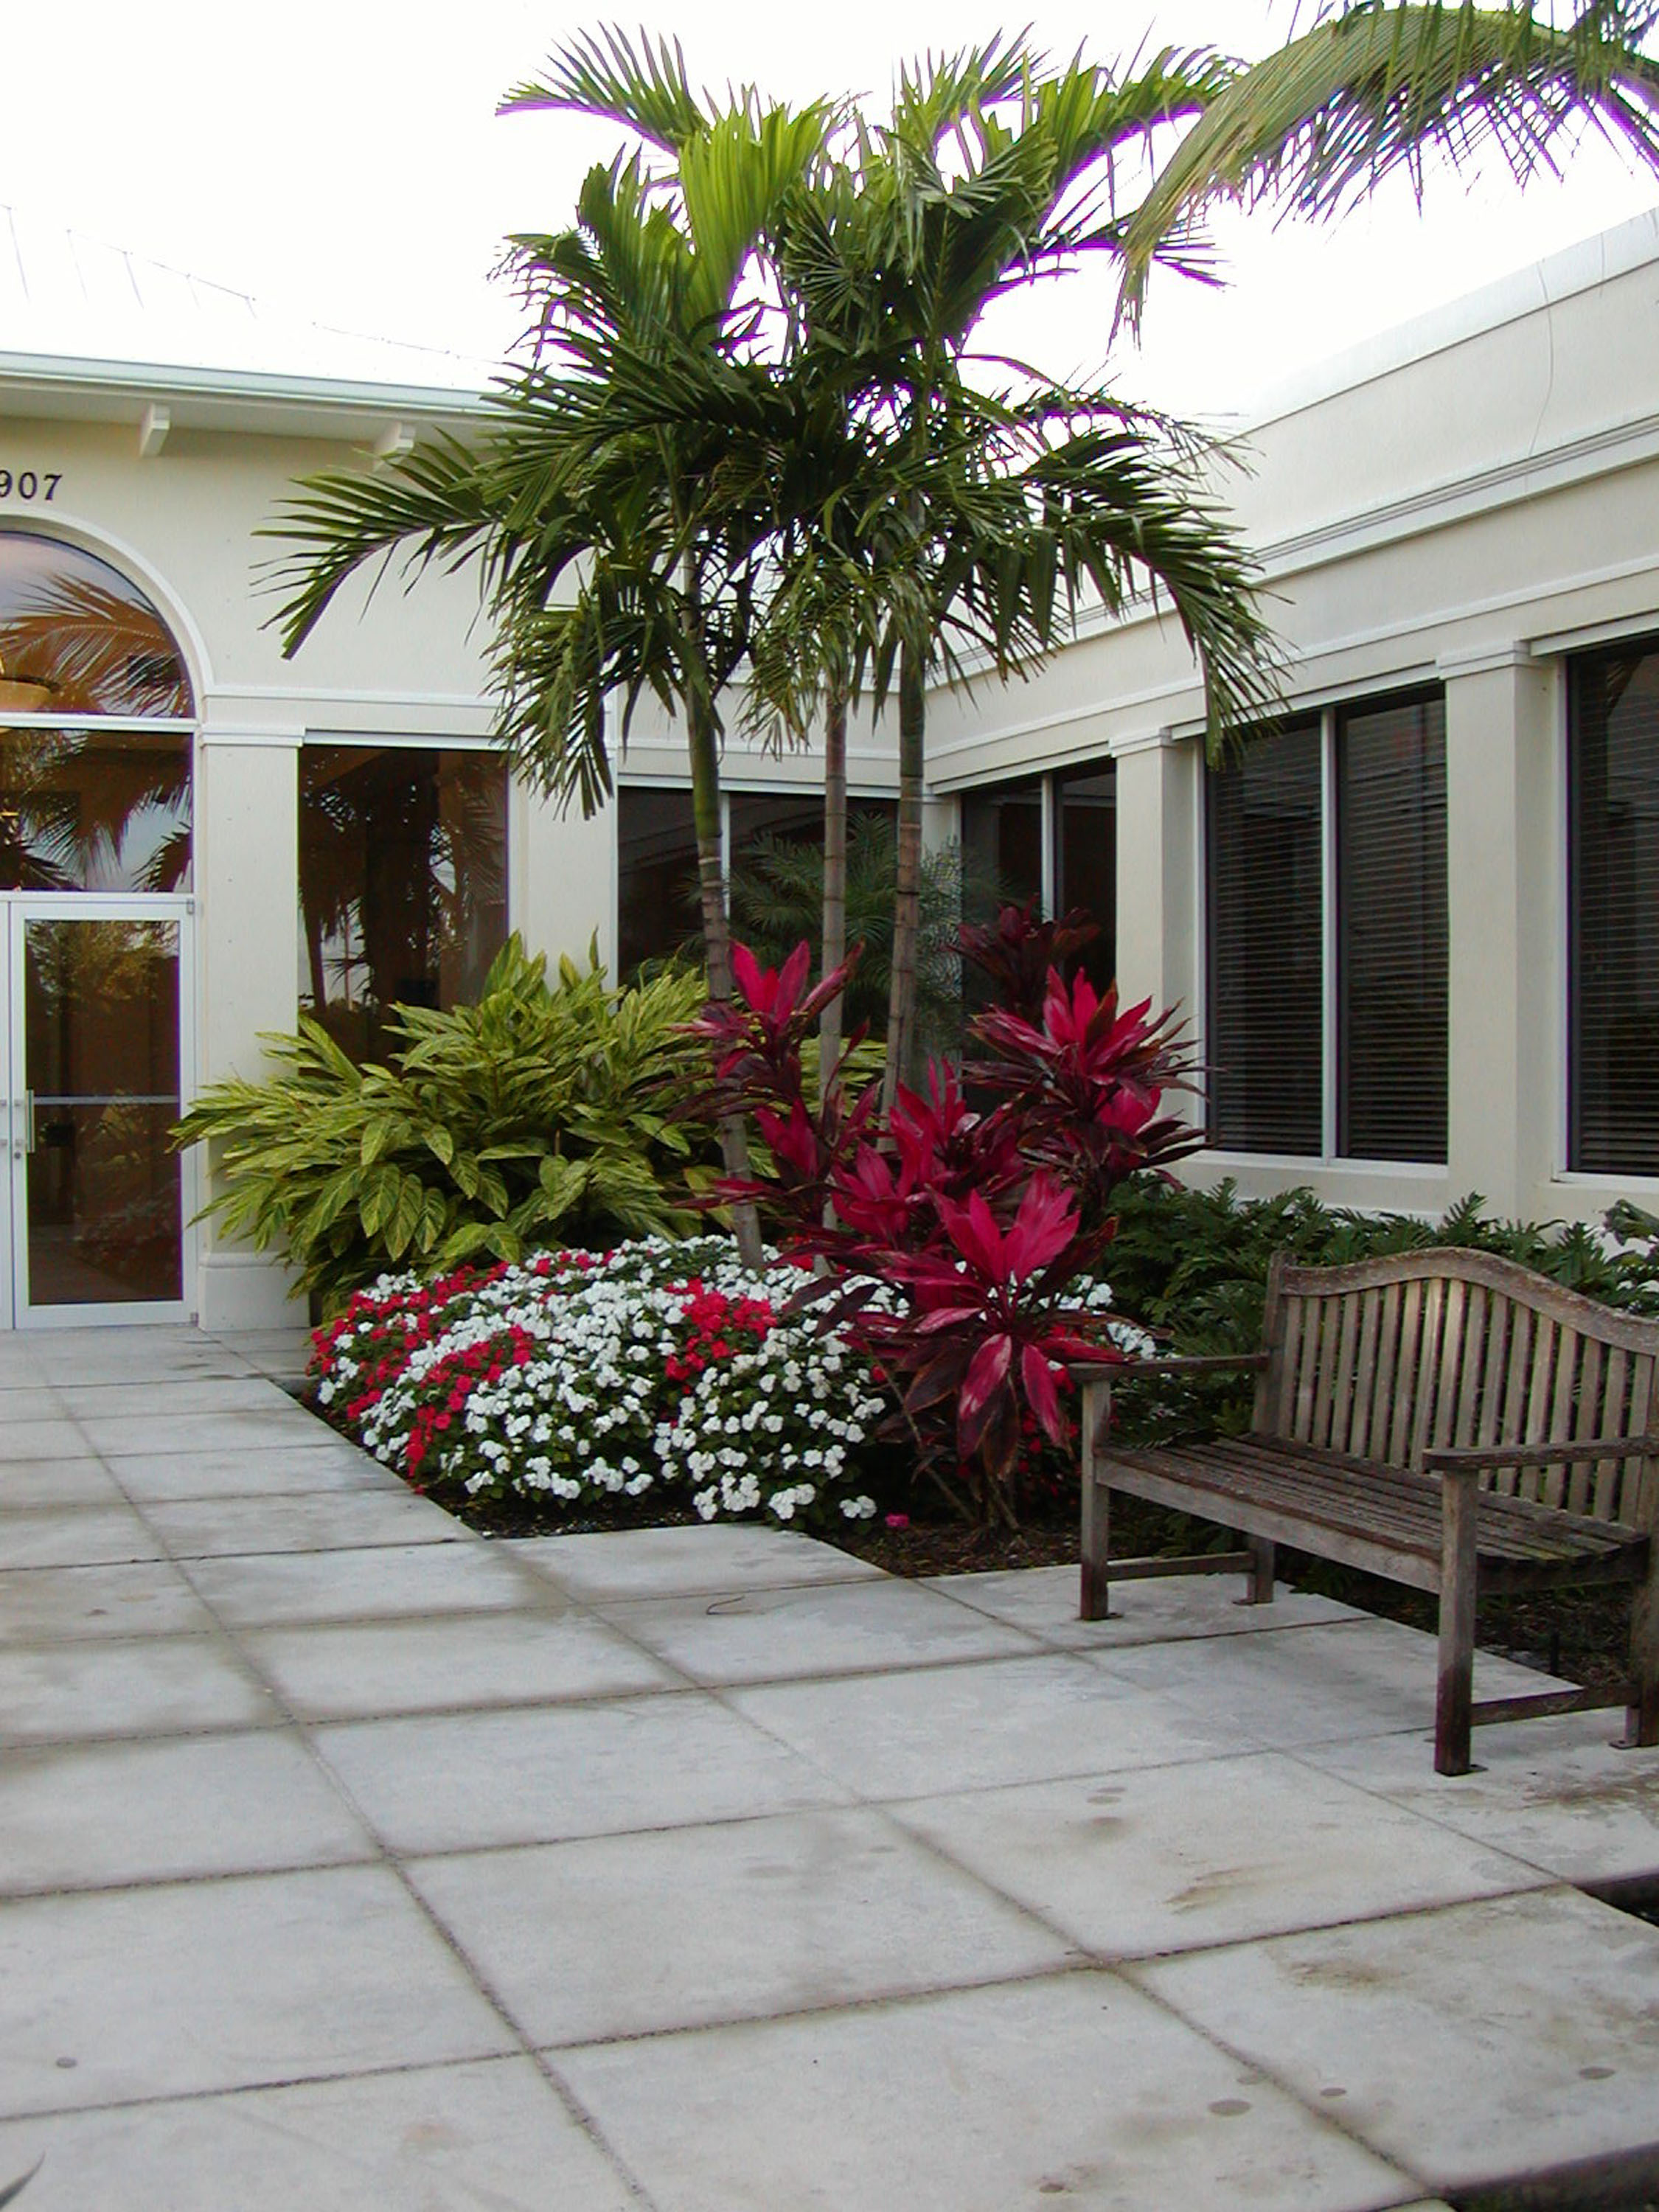 Gentile Holloway O'Mahoney Landscape Architects Planners Environmental Consultants Courtyard.jpg